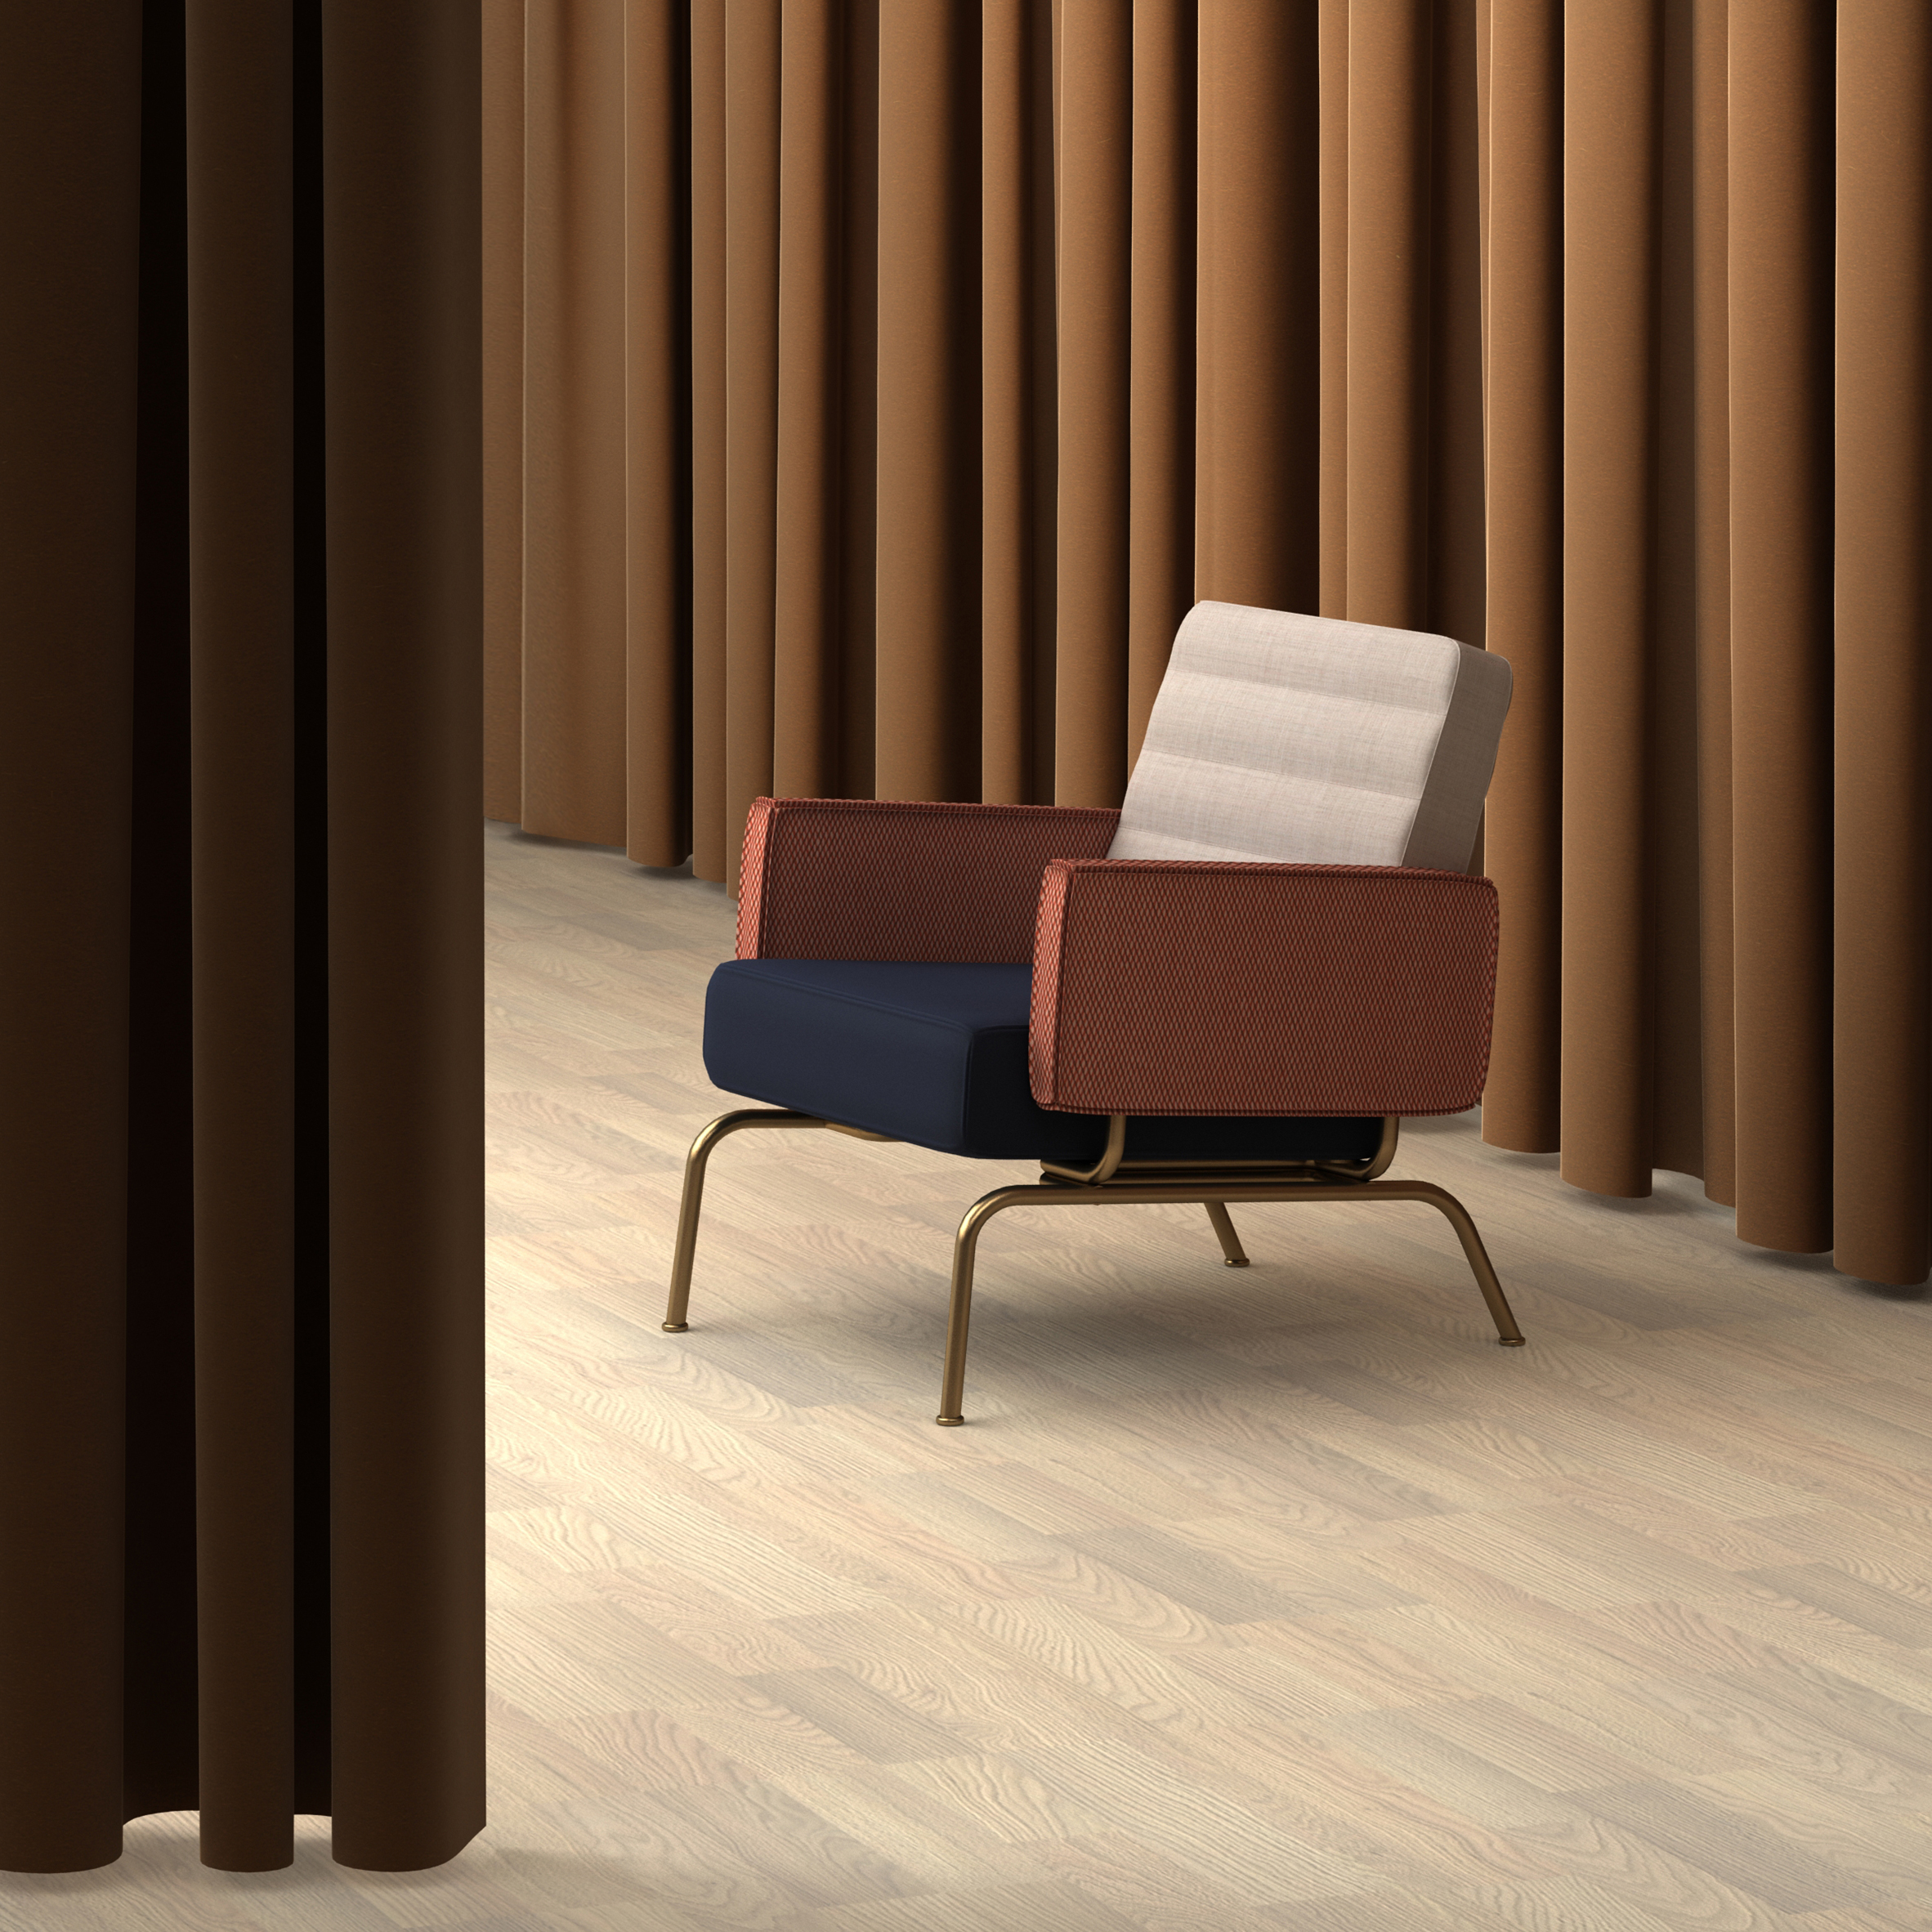 Combo chair by Frank Chou